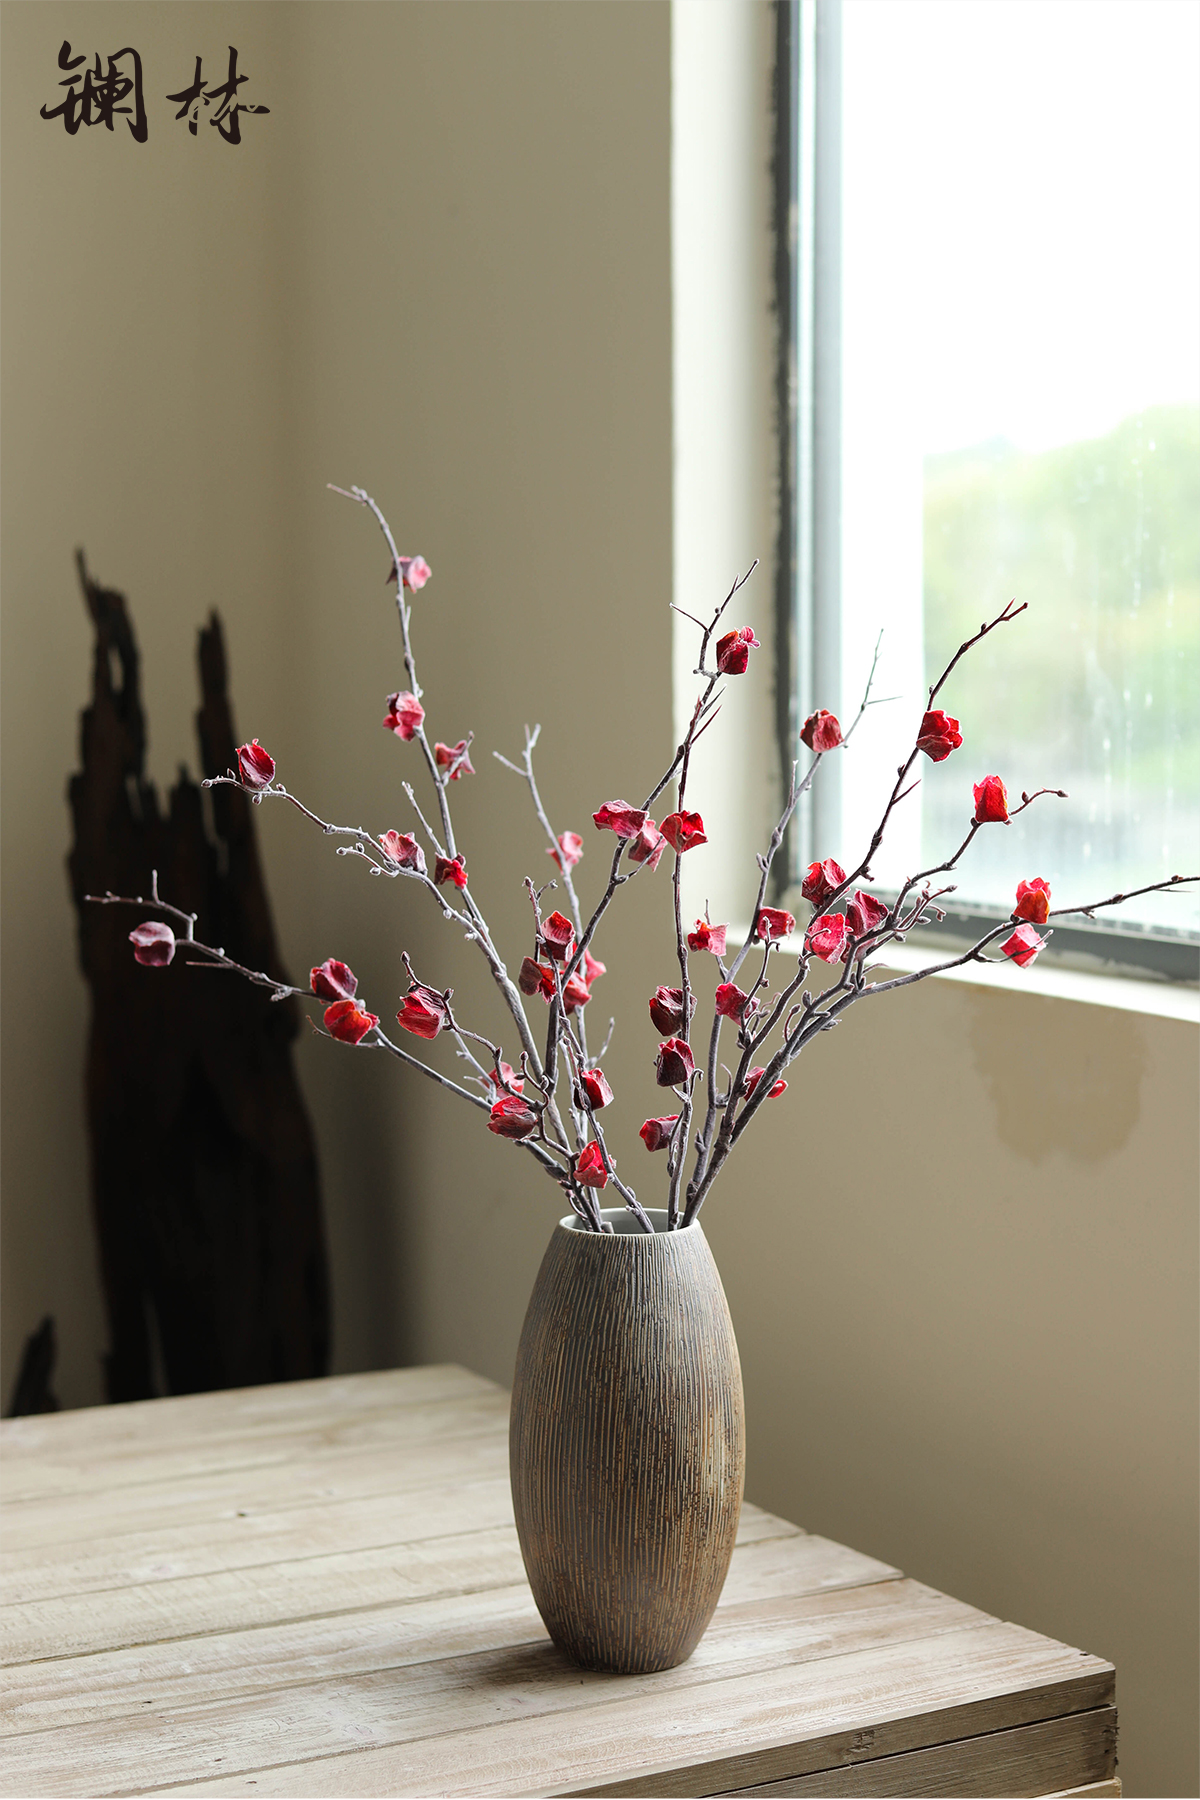 Autumn simulation flower fruit coarse pottery furnishing articles do old wabi-sabi wind restoring ancient ways home stay soft adornment art film props